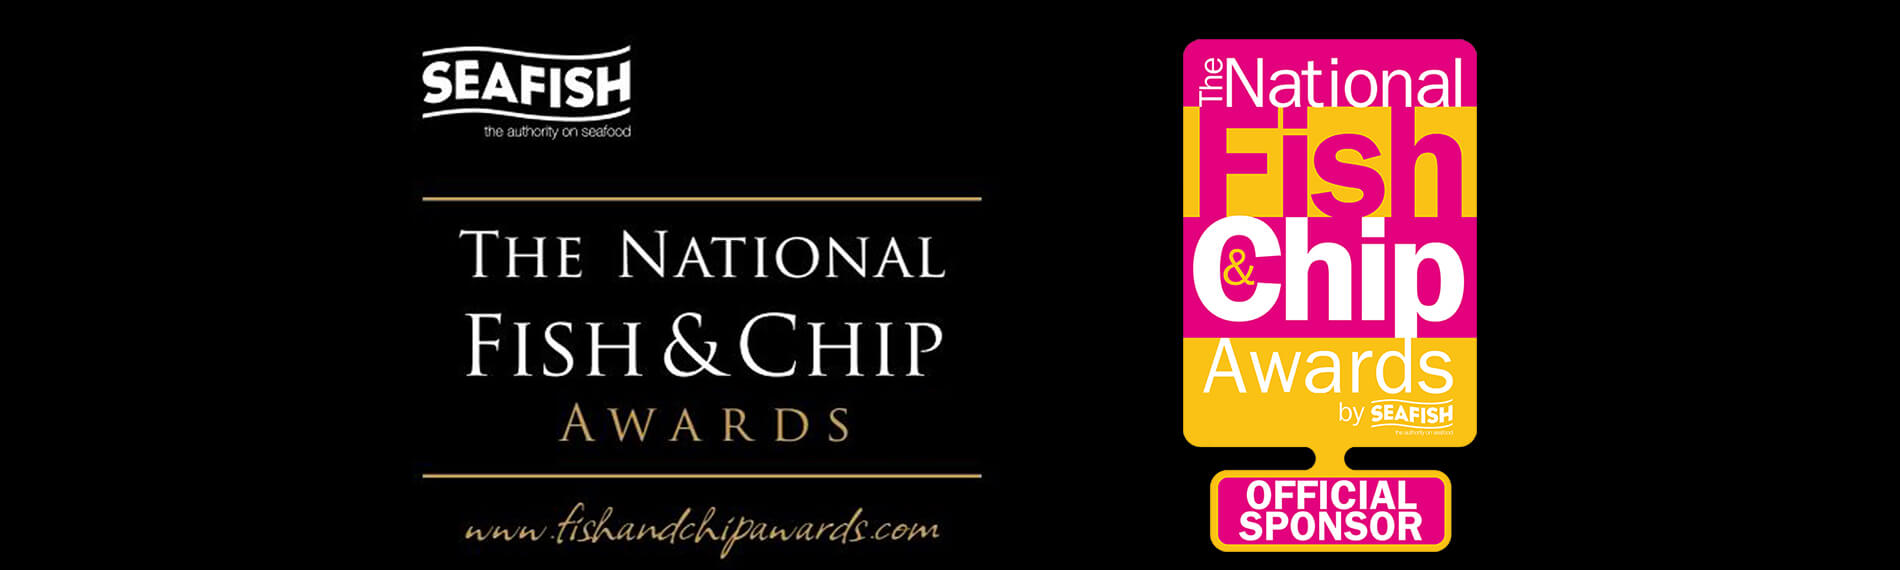 National Fish and Chip Awards